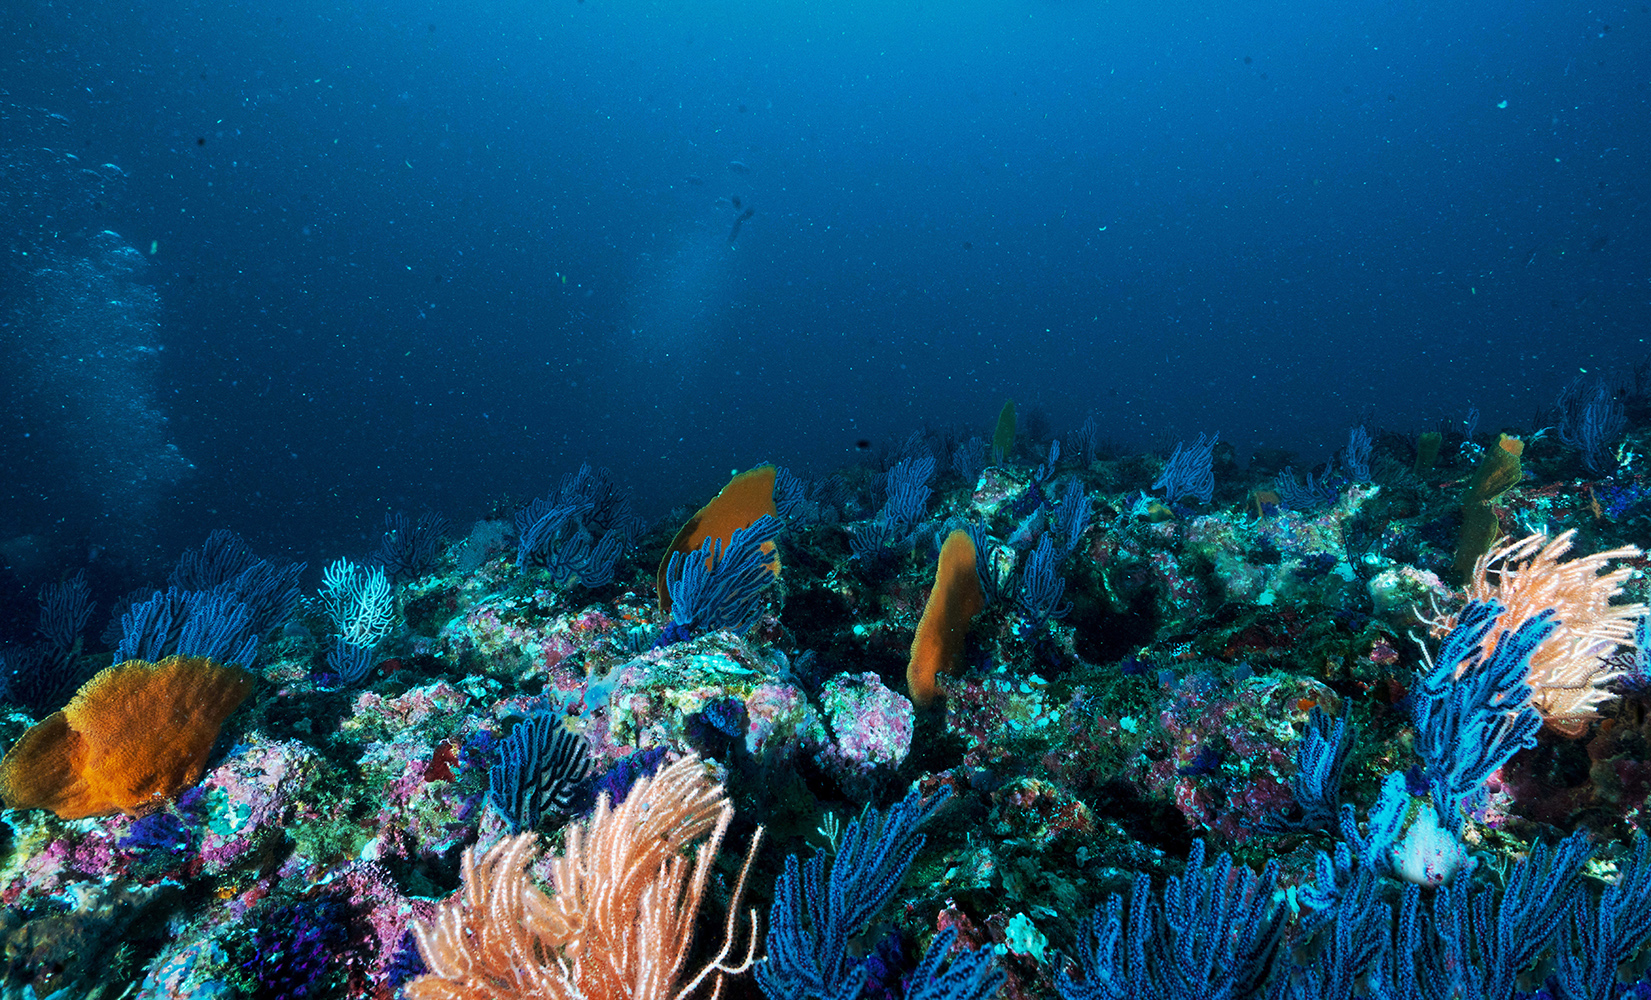 Underneath ocean with colorful coral and fish